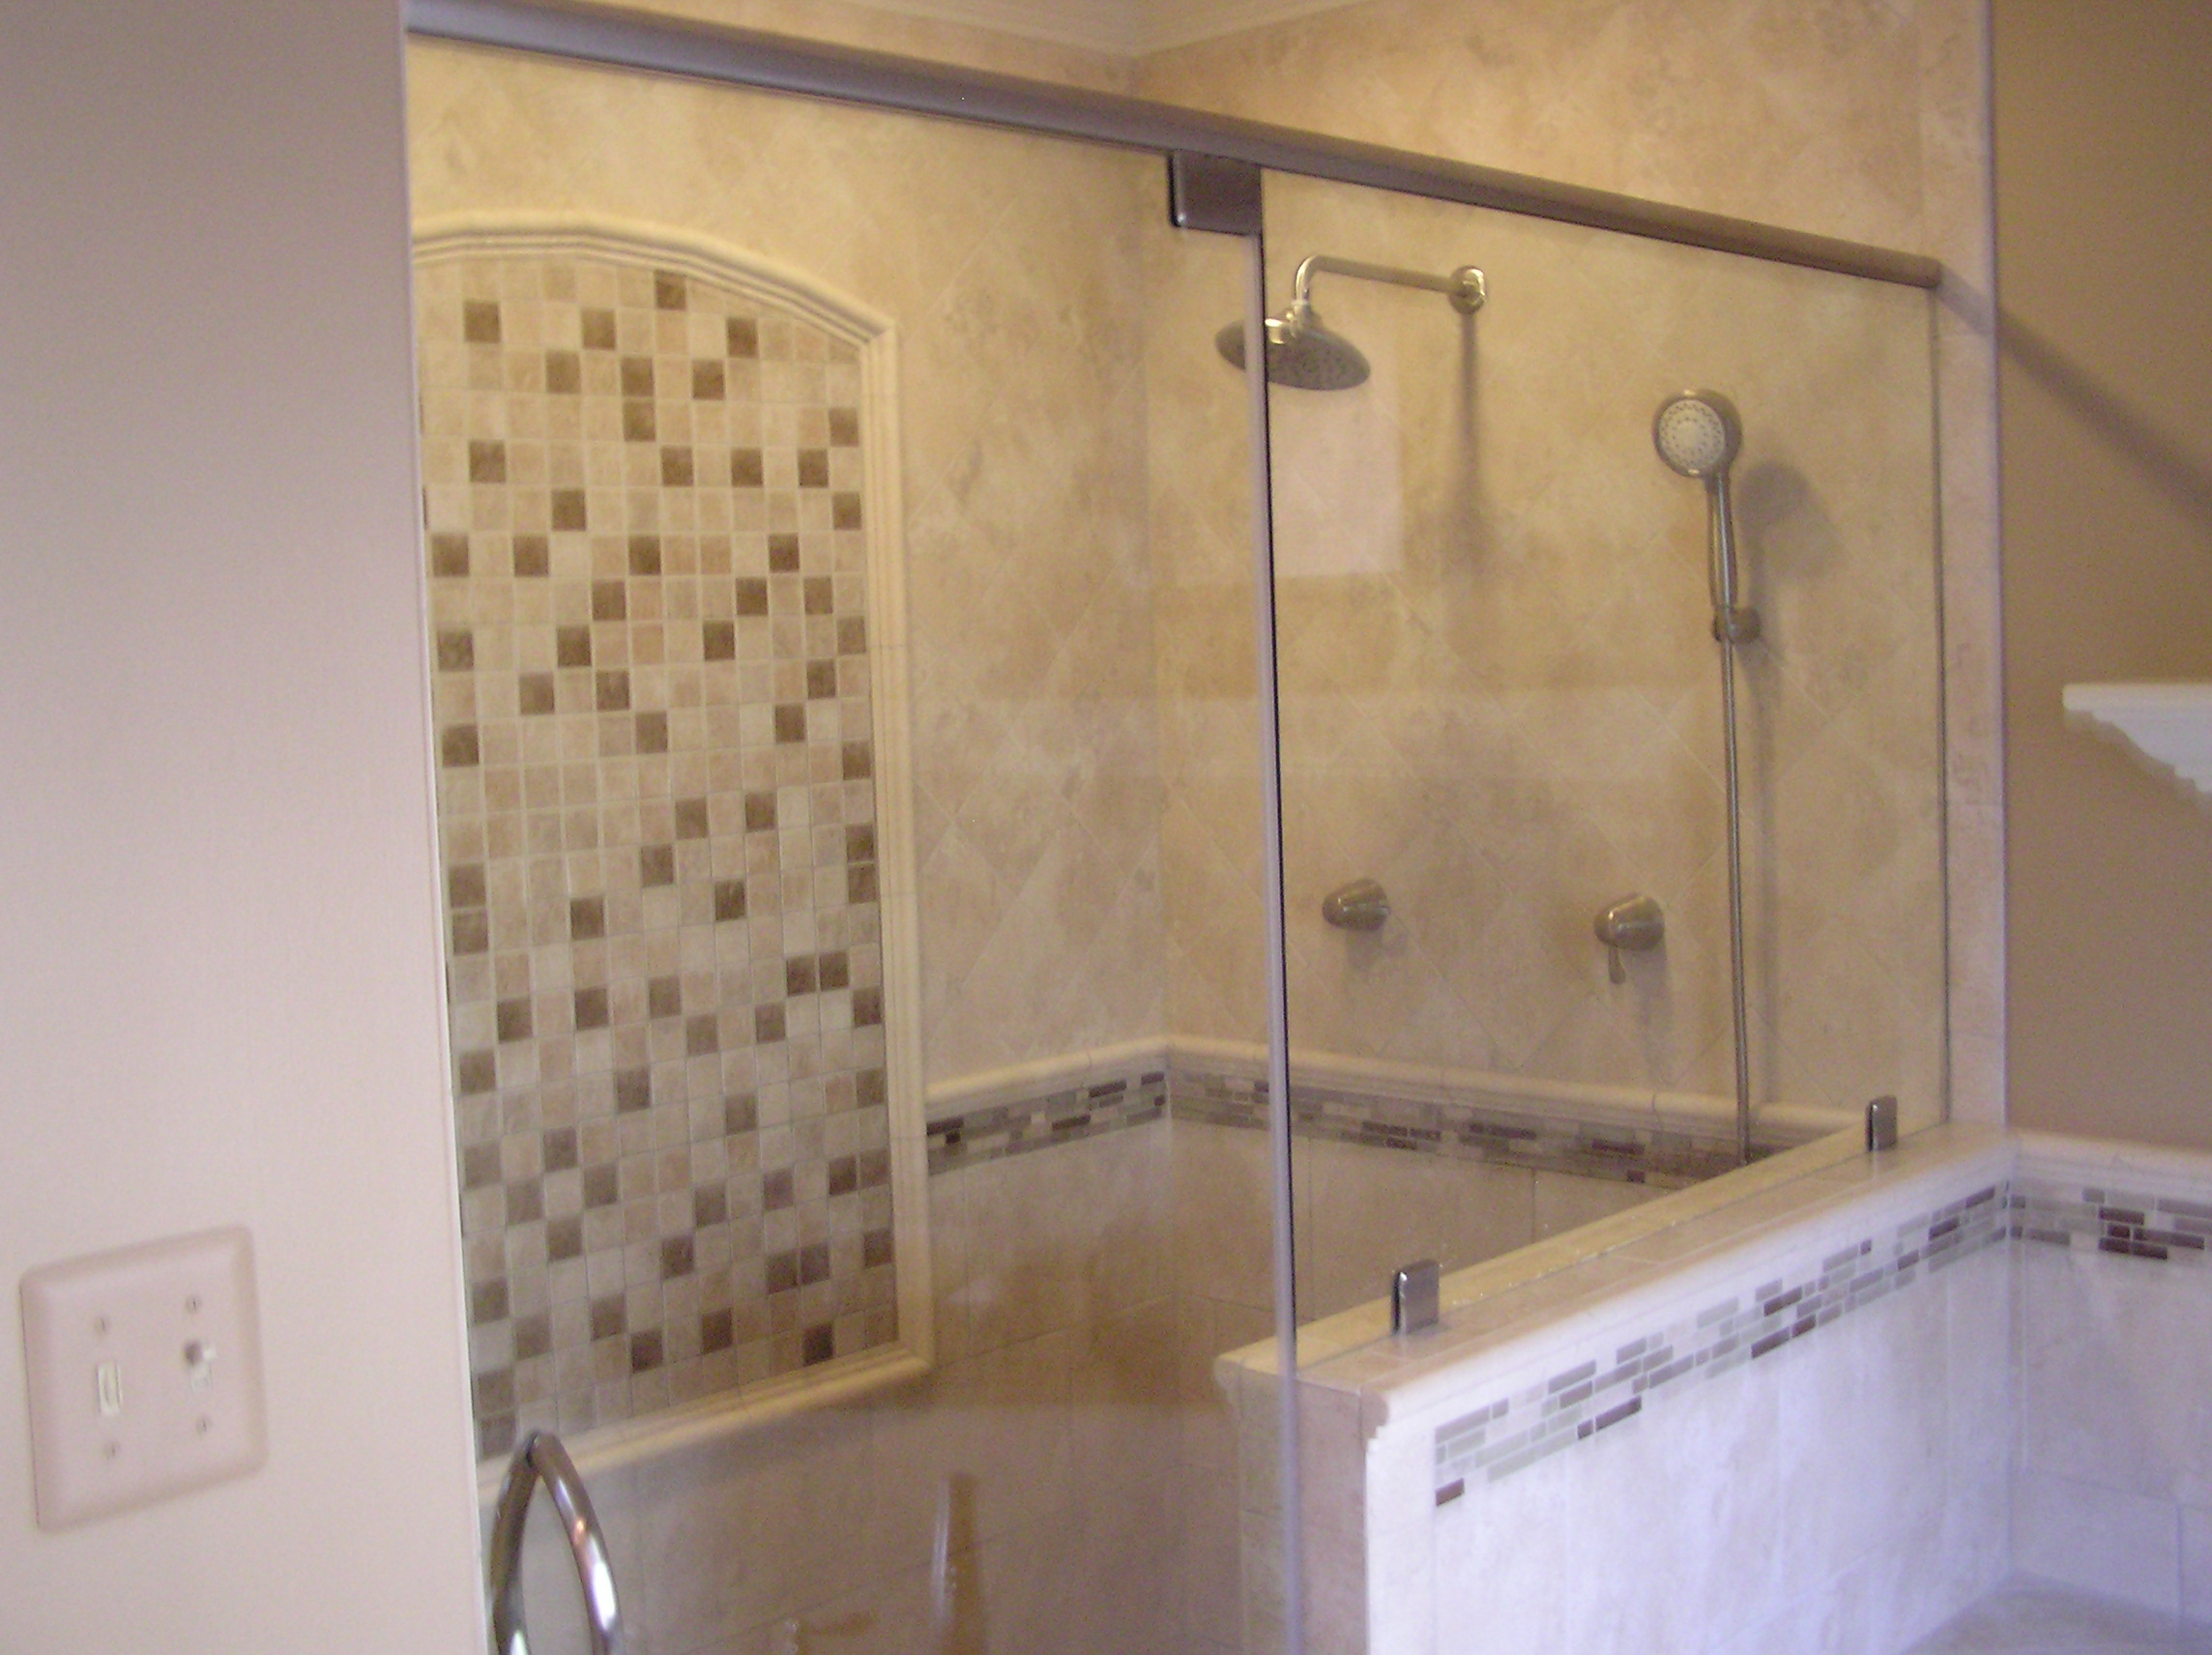 Bathroom remodel ideas walk in shower large and for Bathroom remodel ideas with bathtub